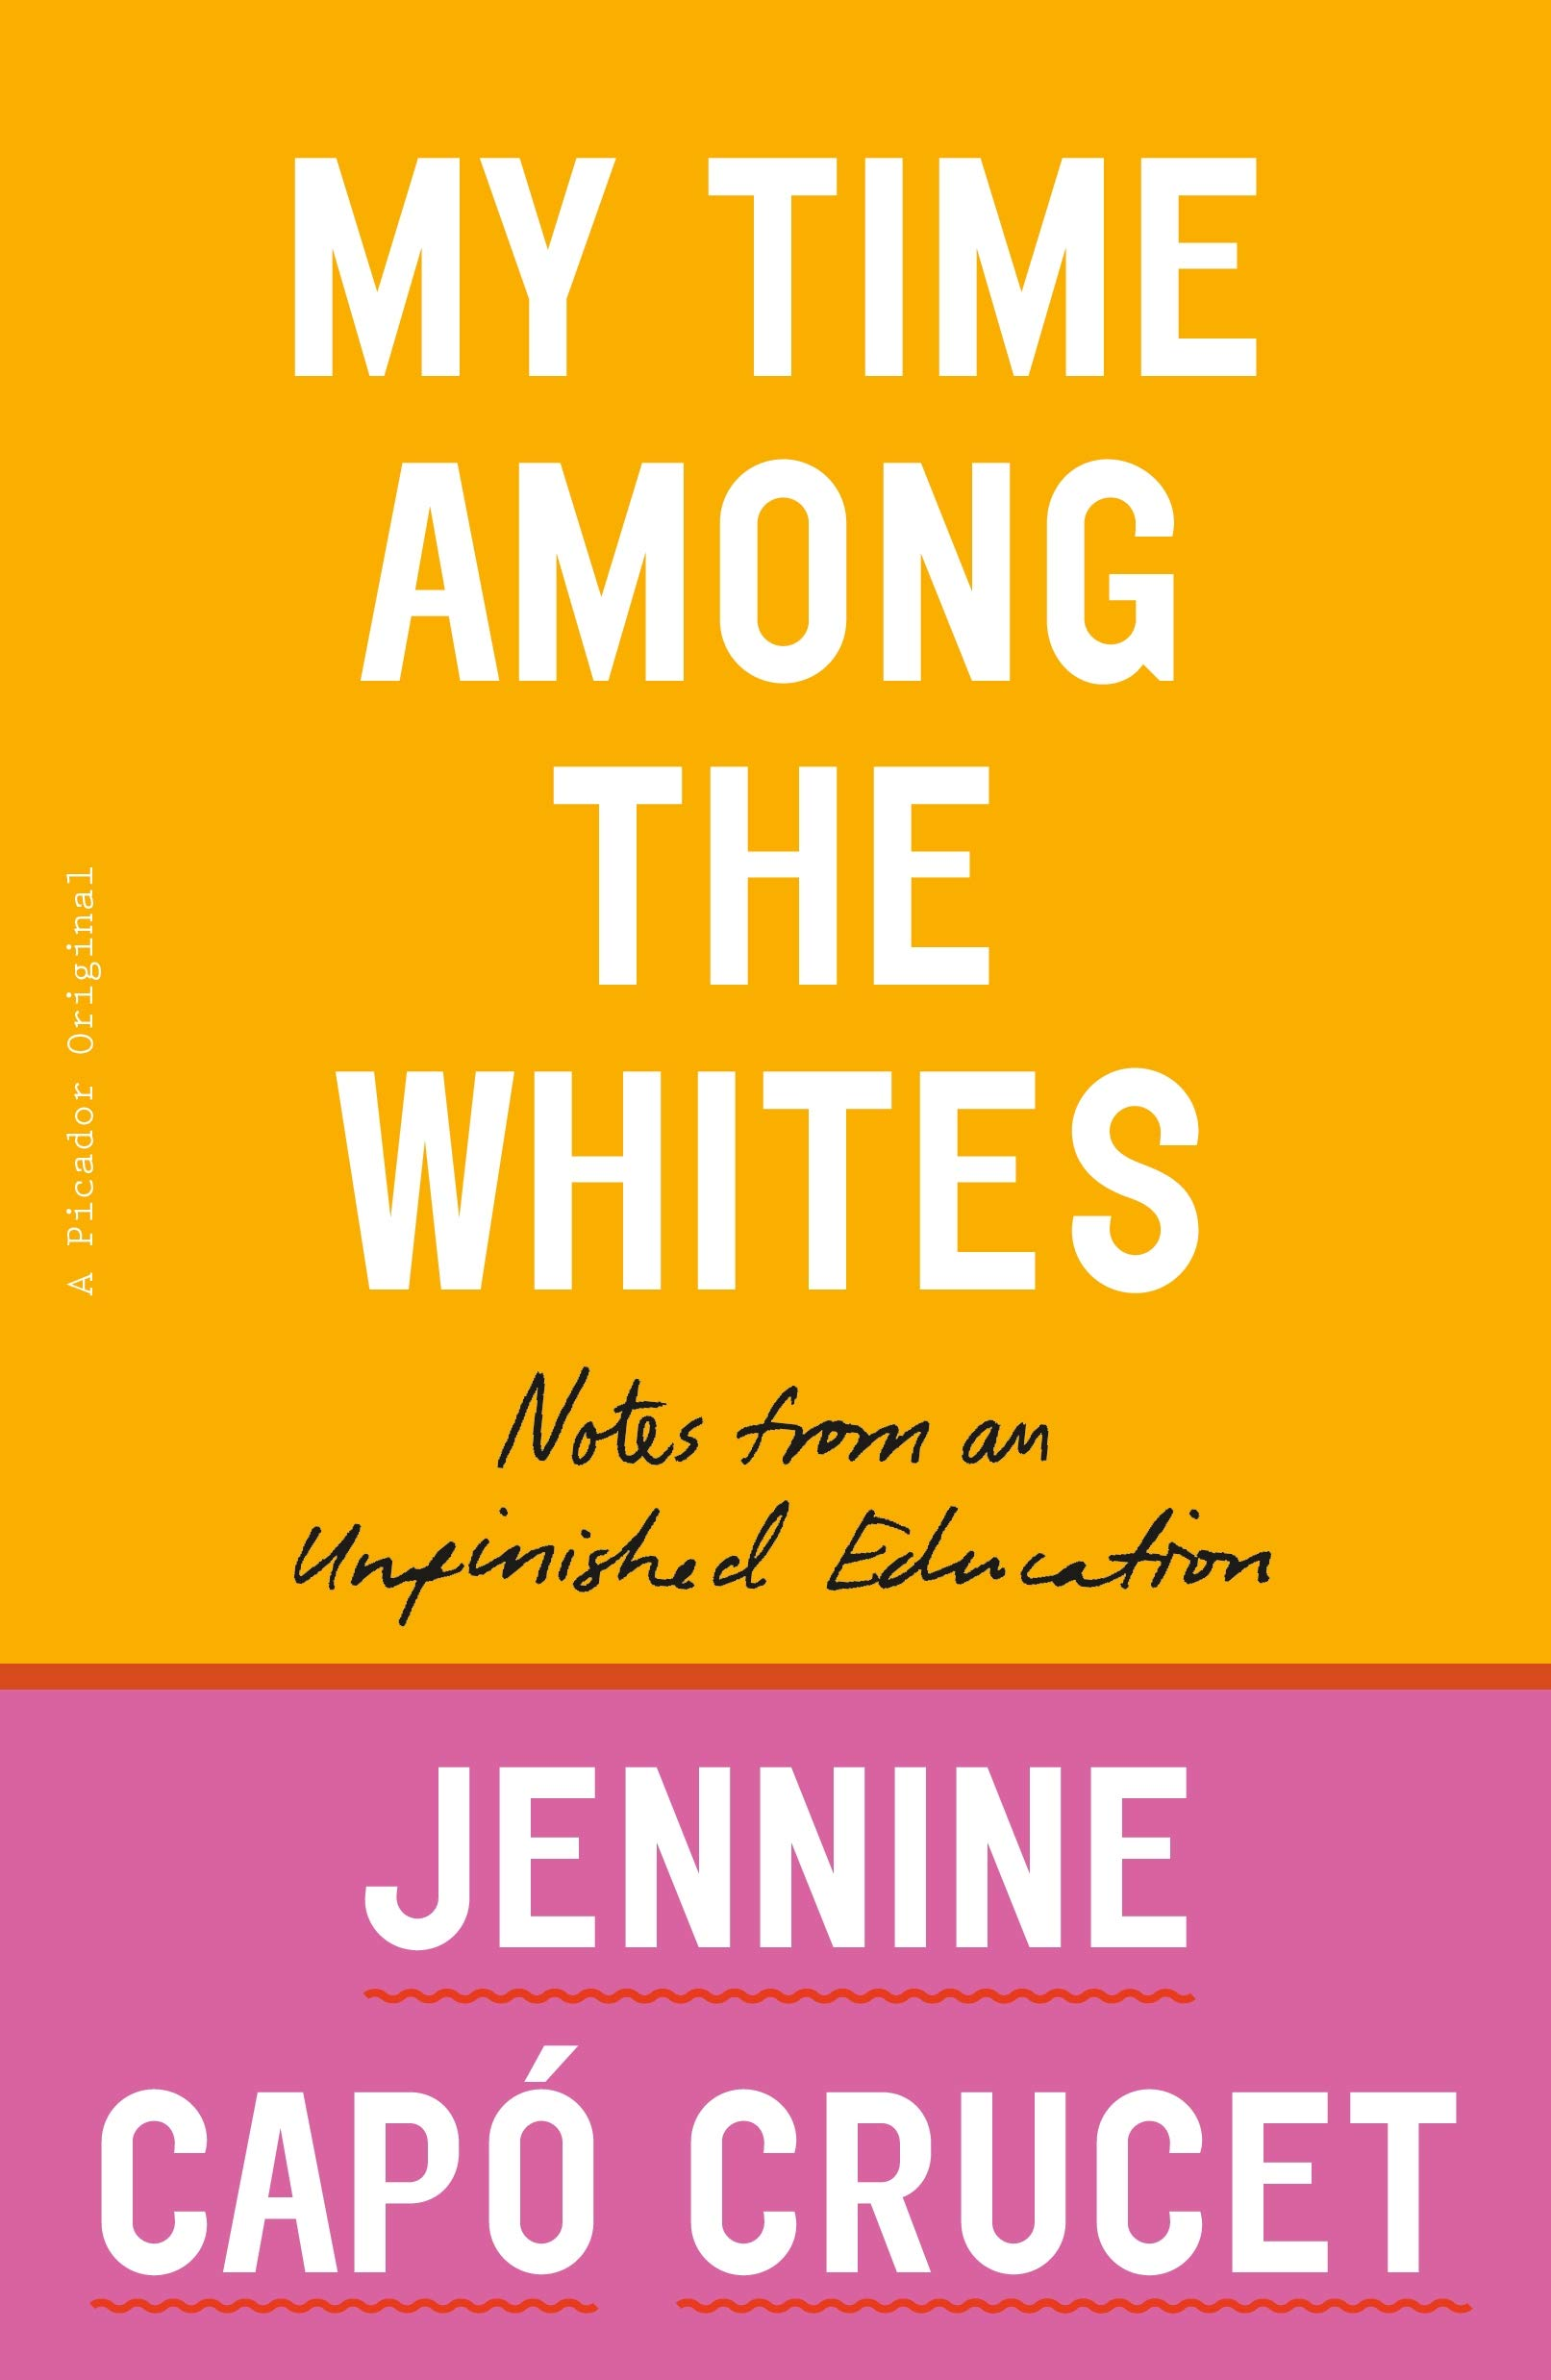 My Time Among the Whites: Notes from an Unfinished Education: Crucet,  Jennine Capó: 9781250299437: Books - Amazon.ca